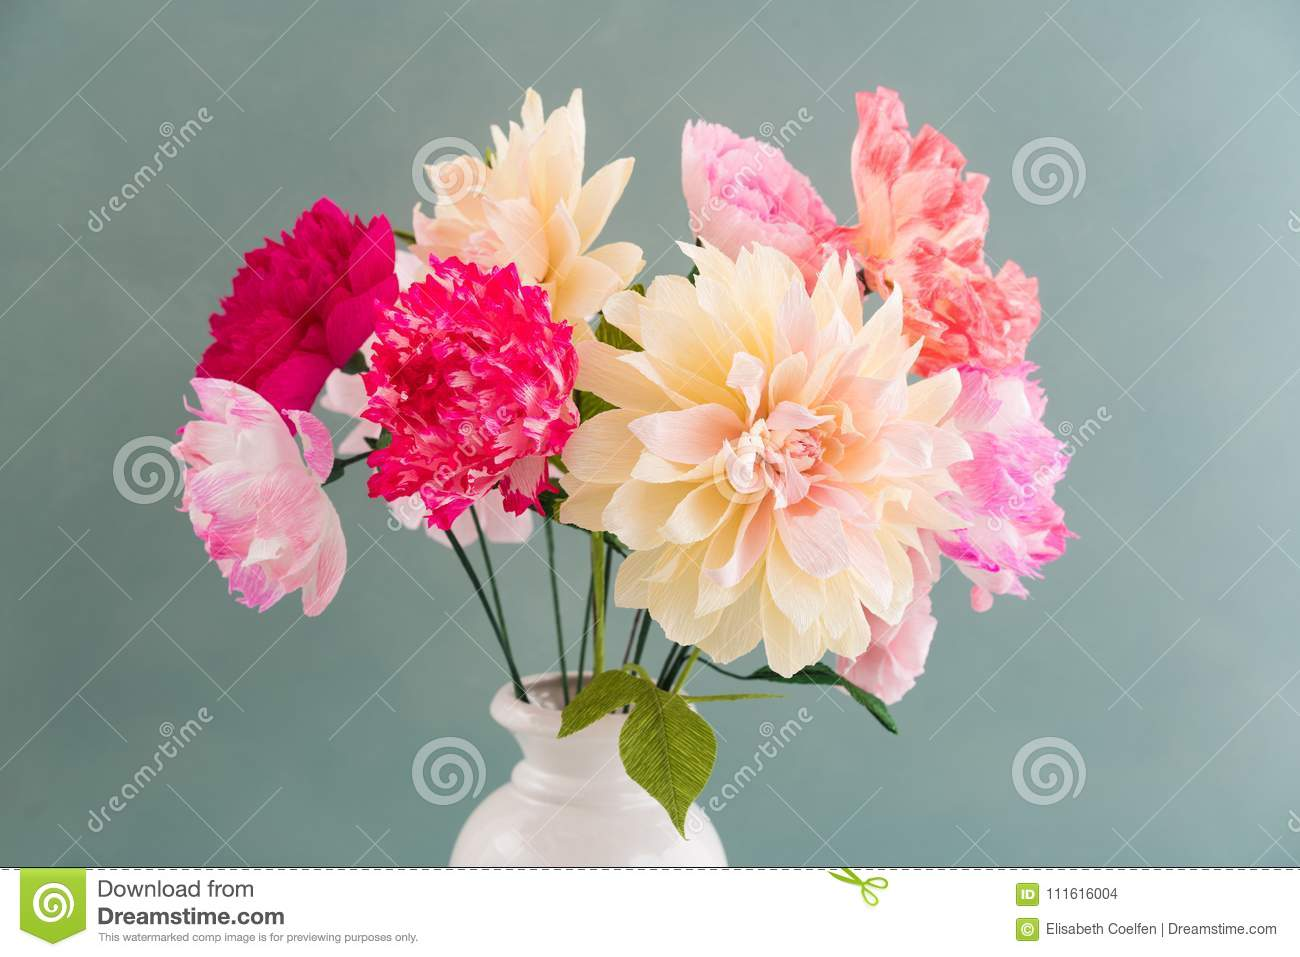 Crepe Paper Flower Bouquet Stock Photo Image Of White 111616004